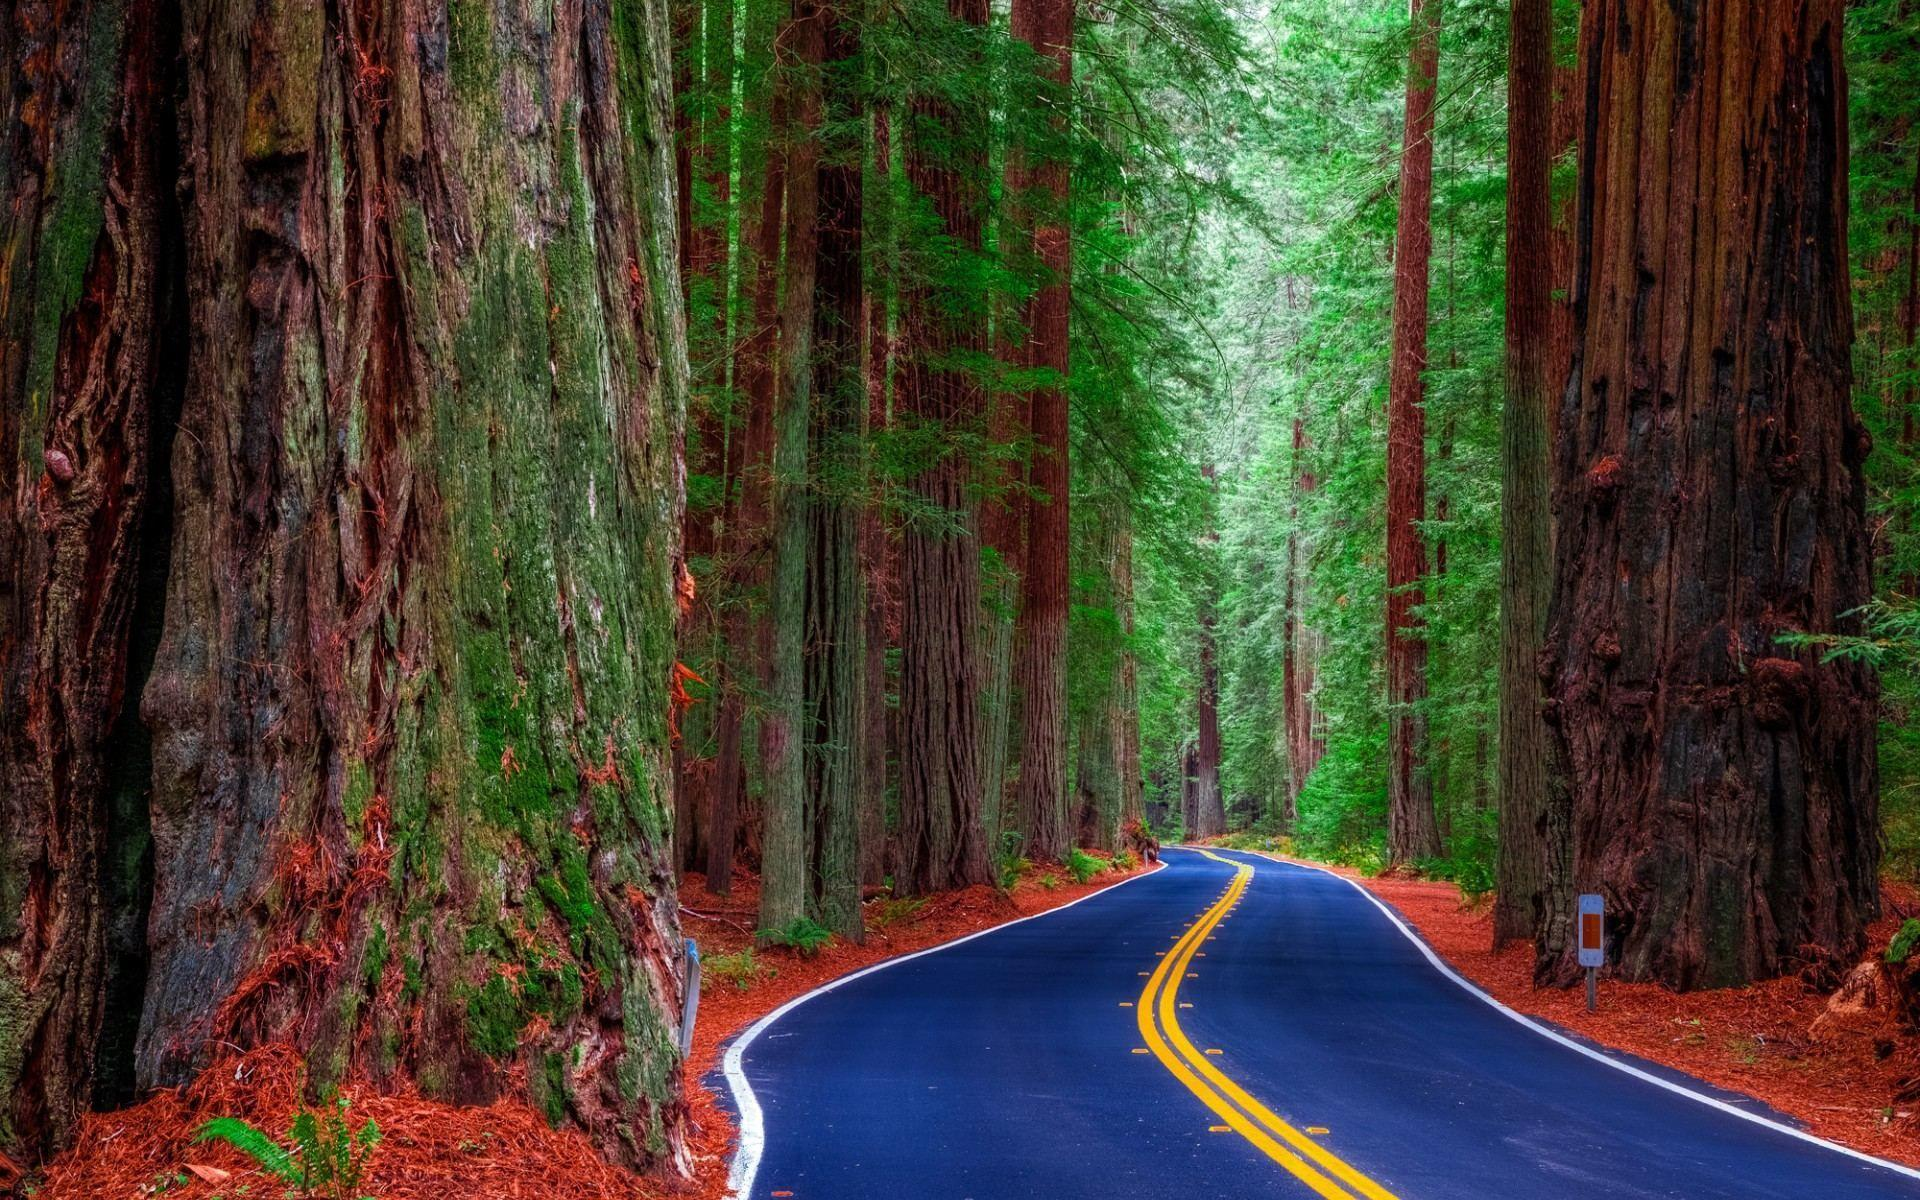 Redwood Forest Road Wallpapers HD Download For Desktop